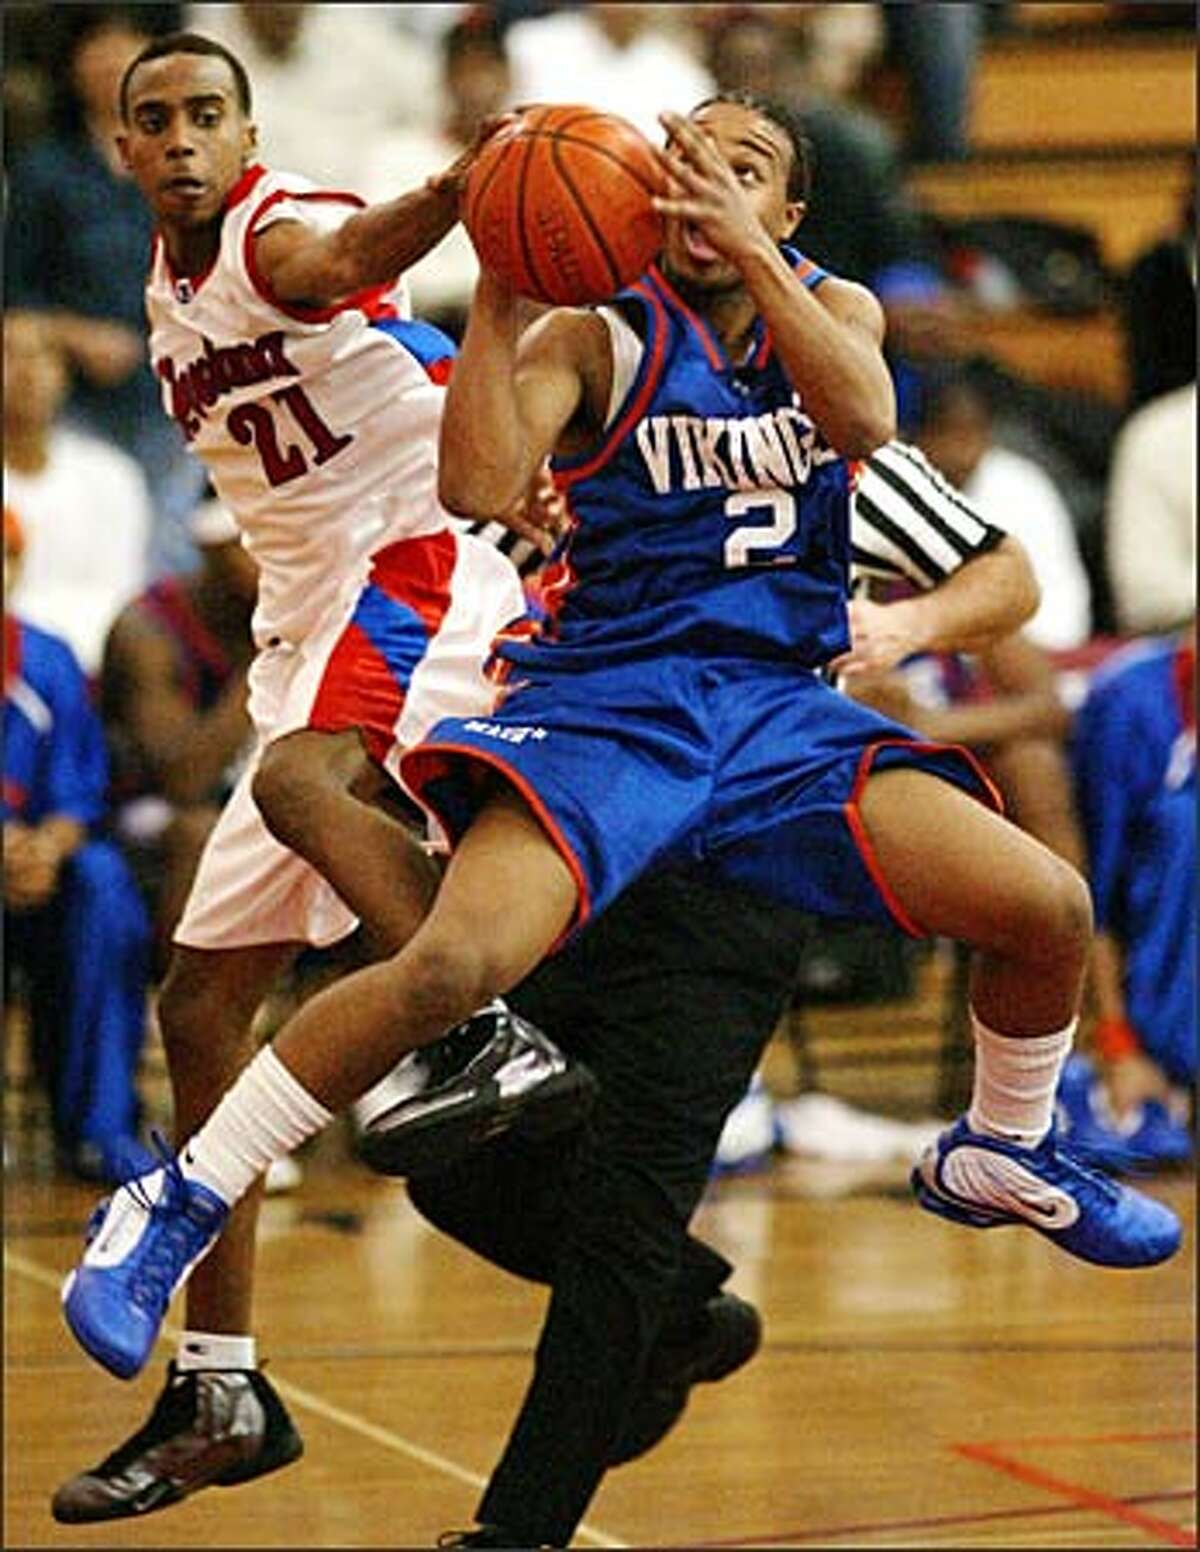 Cleveland's Antonio Sims blocks a shot by Rainier Beach's Dwayne Wright during Friday's game. Cleveland shocked the top-ranked Vikings 65-60.